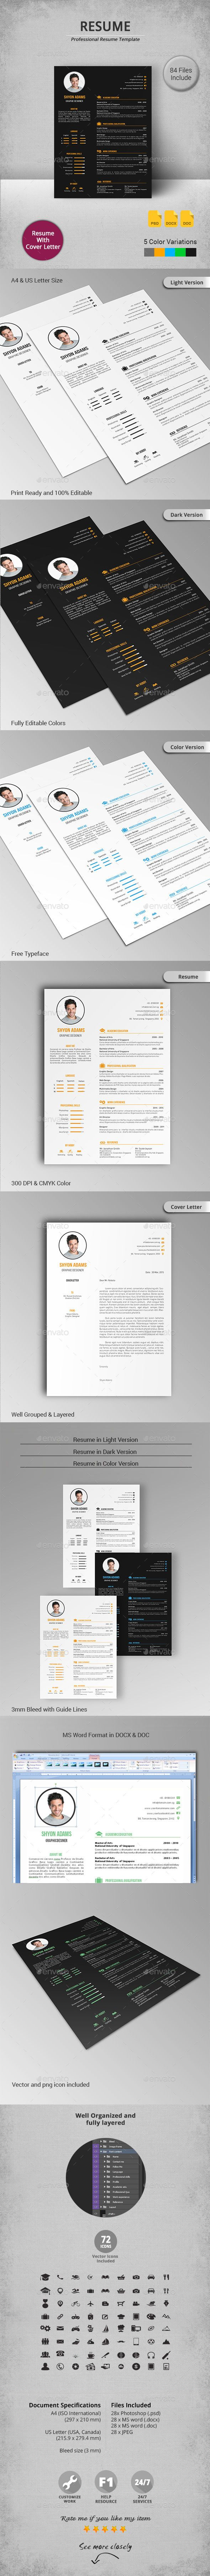 Best Cv Images On   Cv Template Design Resume And